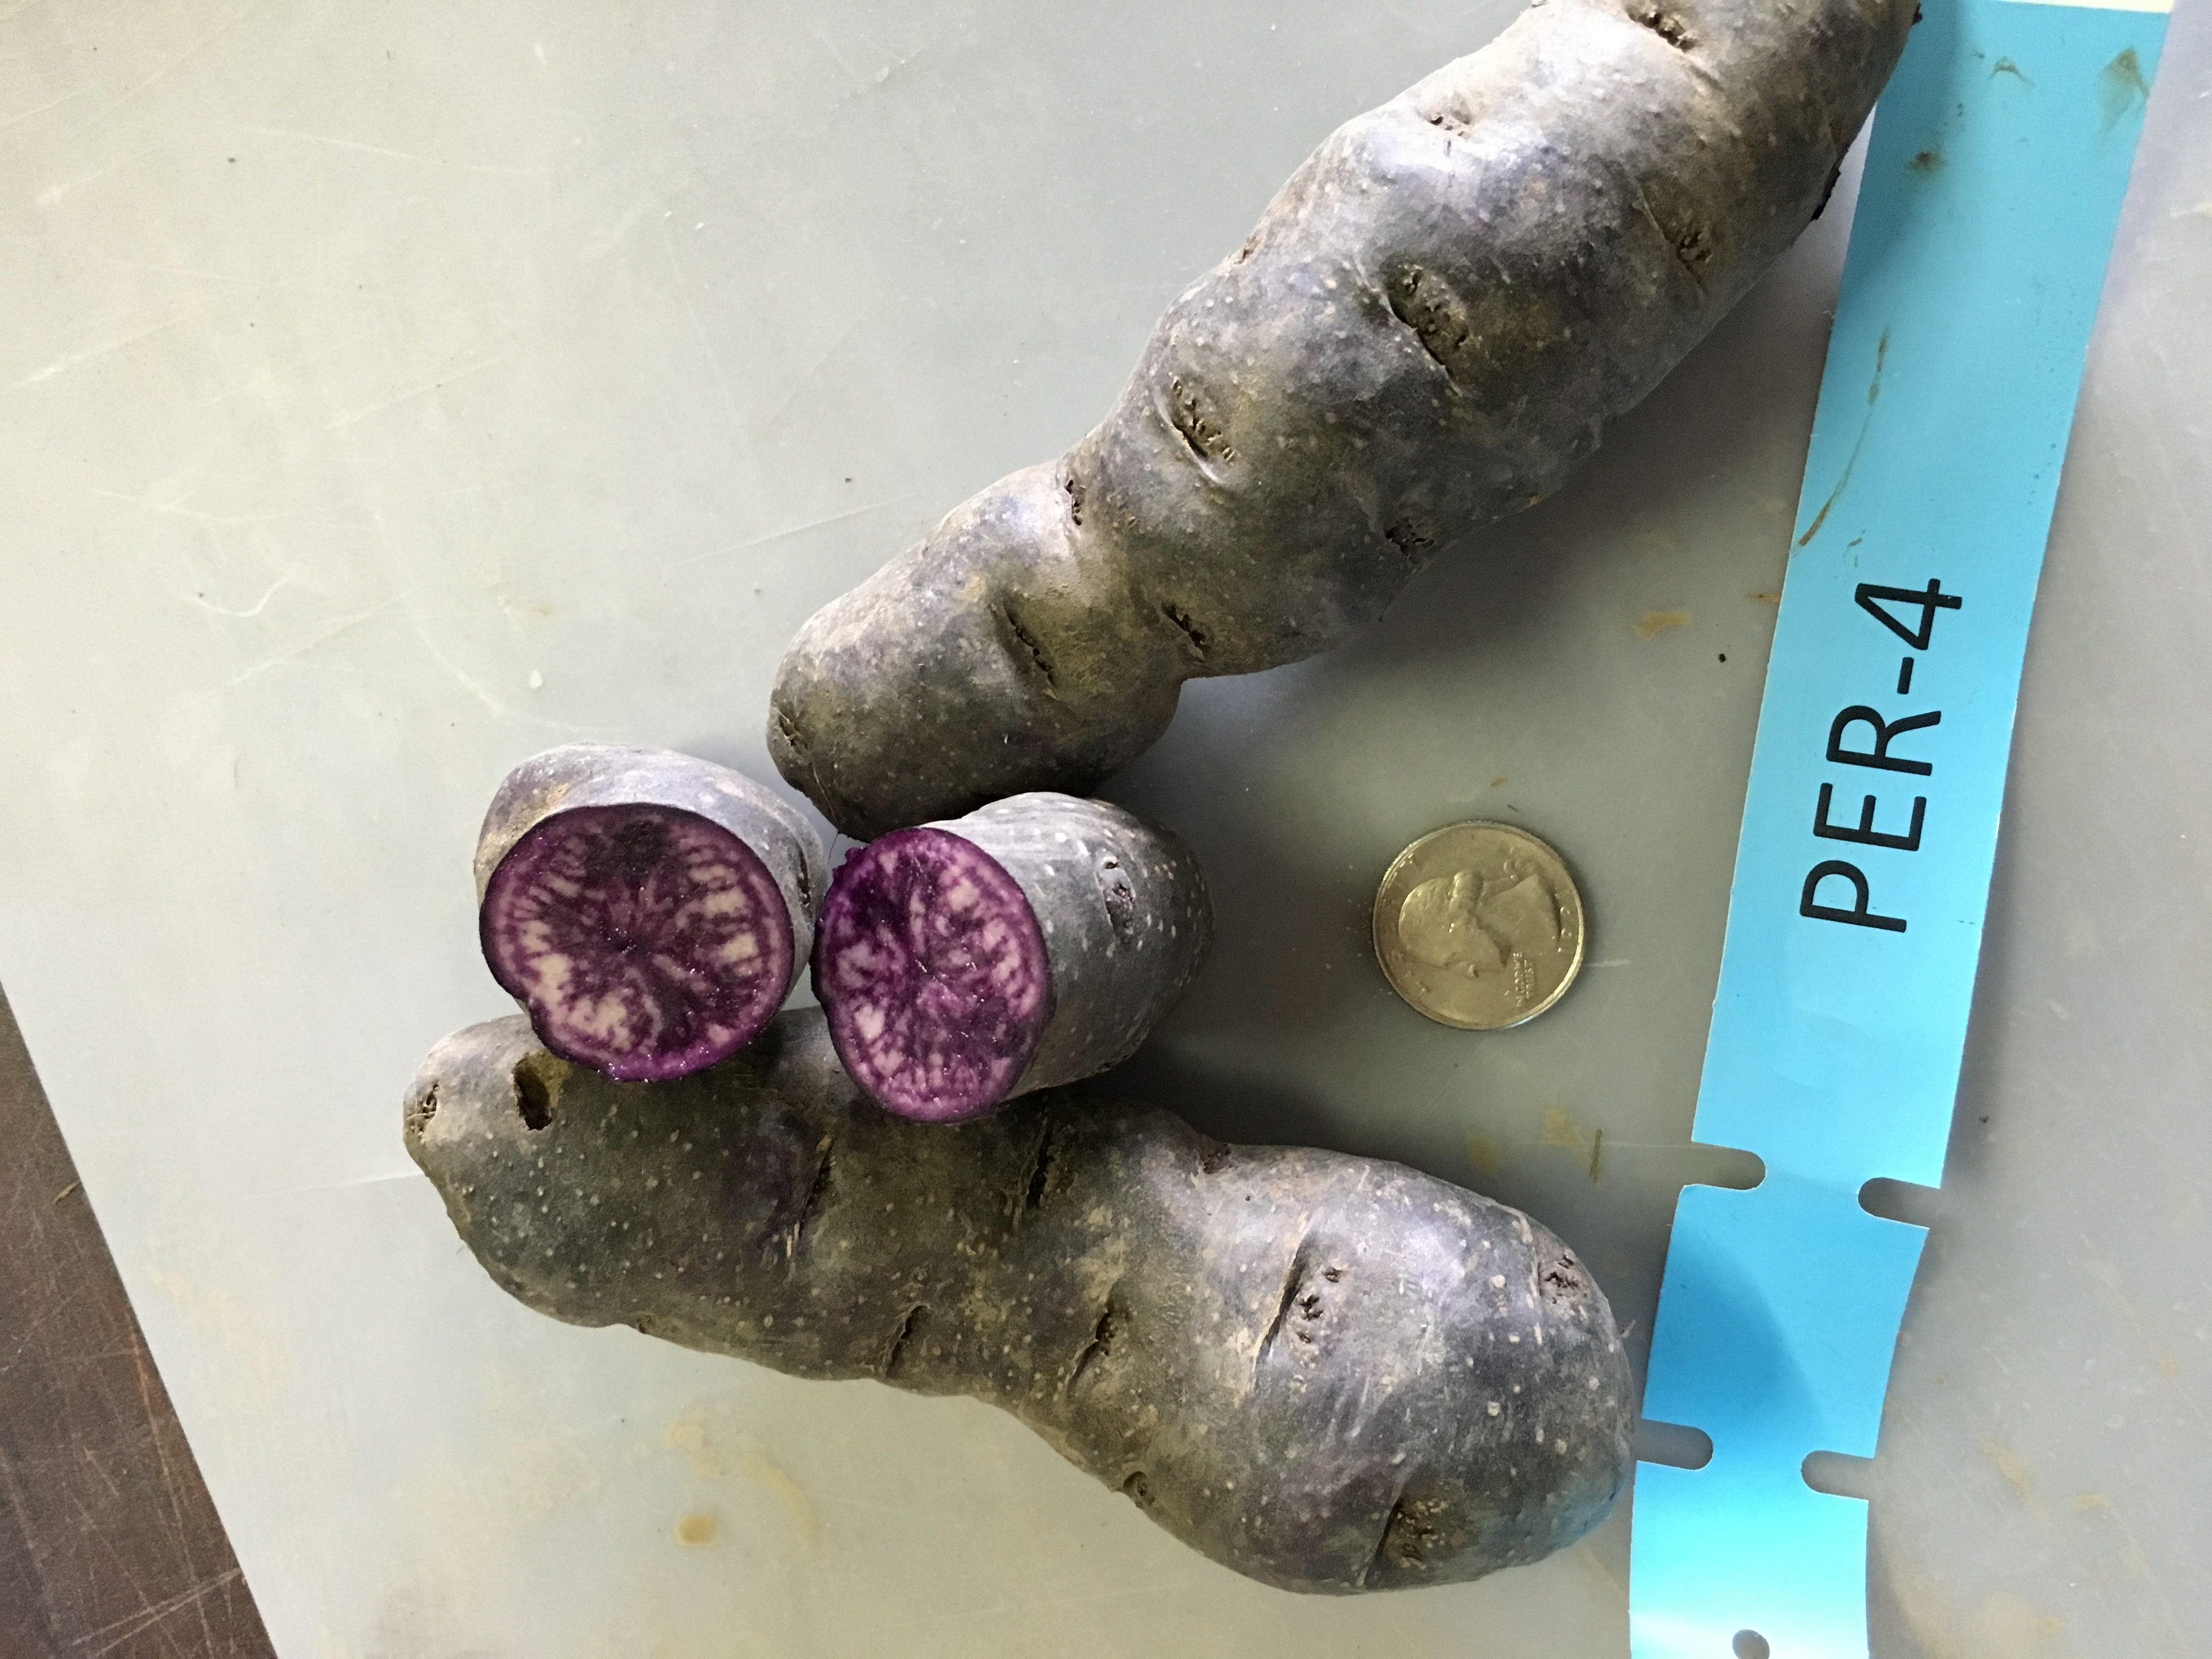 Peruvian blue potato varieties. Both Barbara and Peruvian blue varieties, sparked interest from Growers, though average yields are a concern. Photo by Ruth Genger